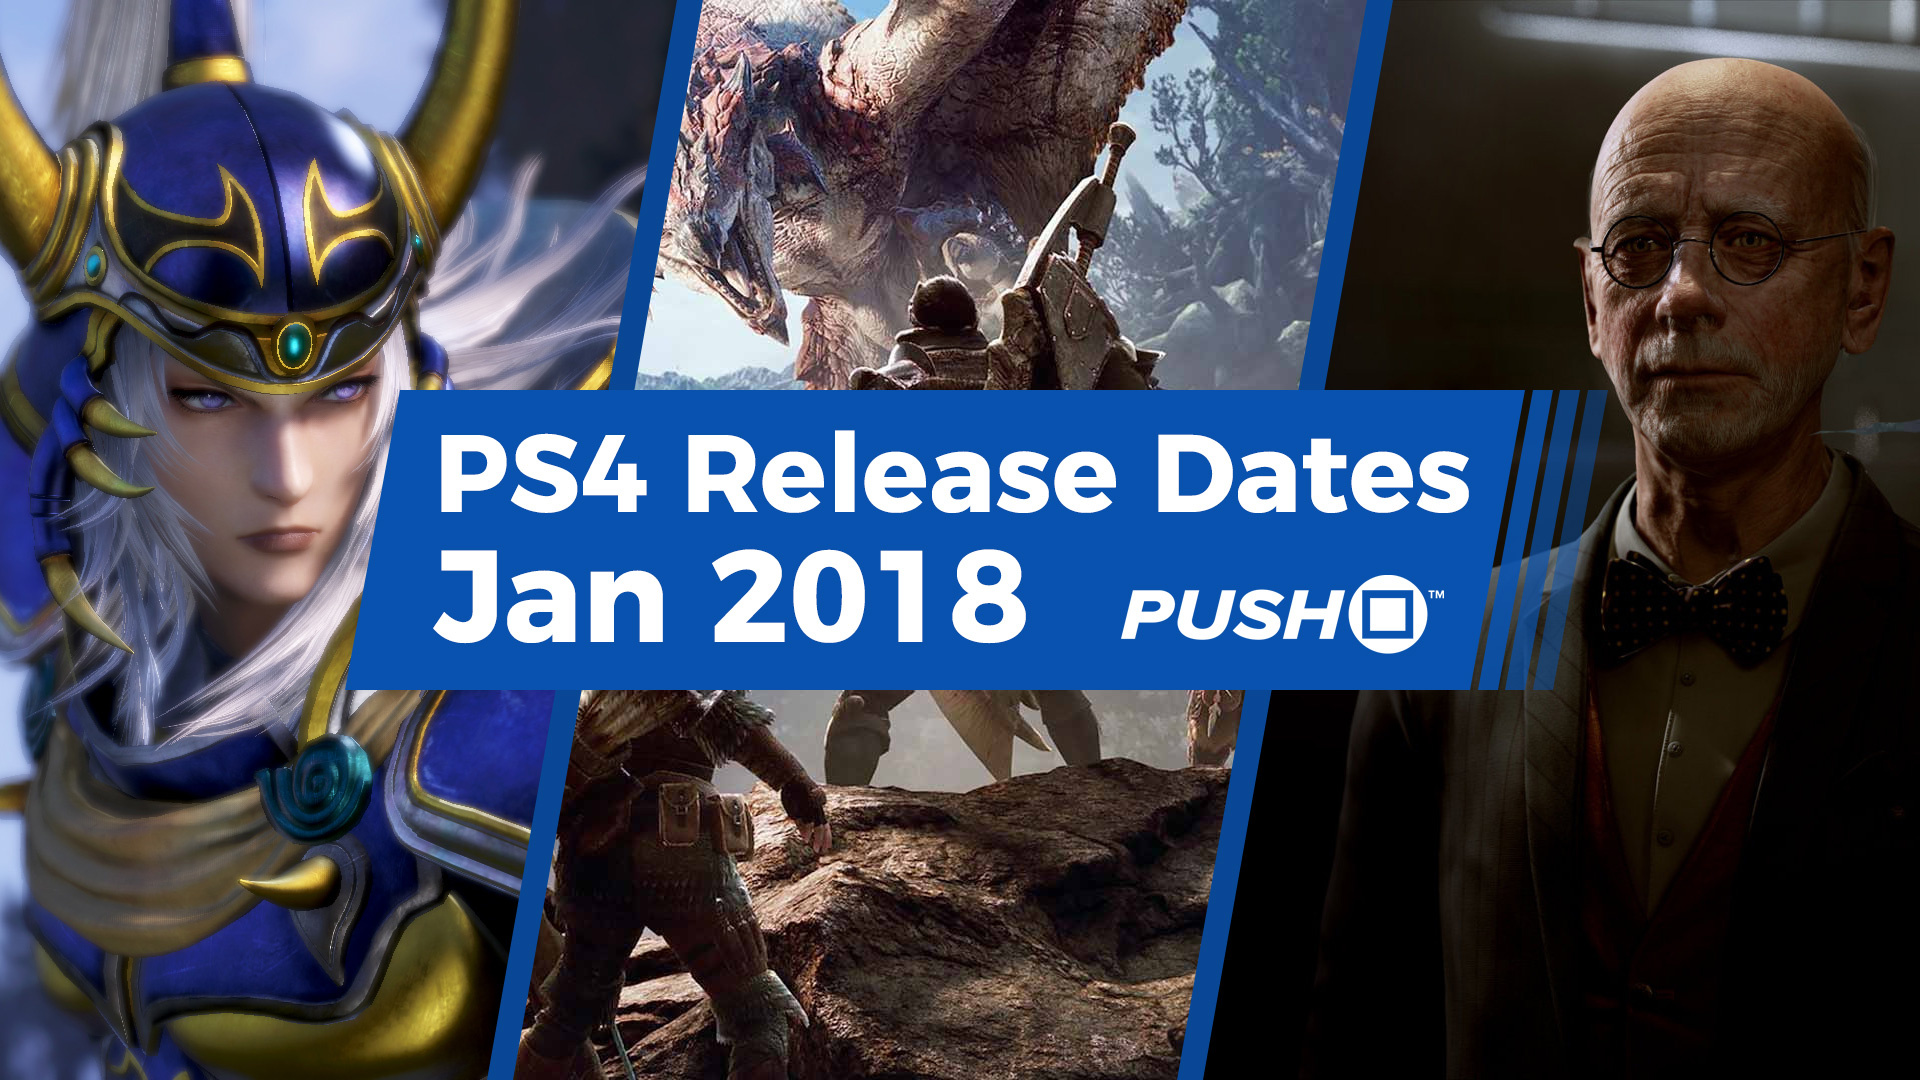 New PS4 Games Releasing in January 2018 - Guide - Push Square